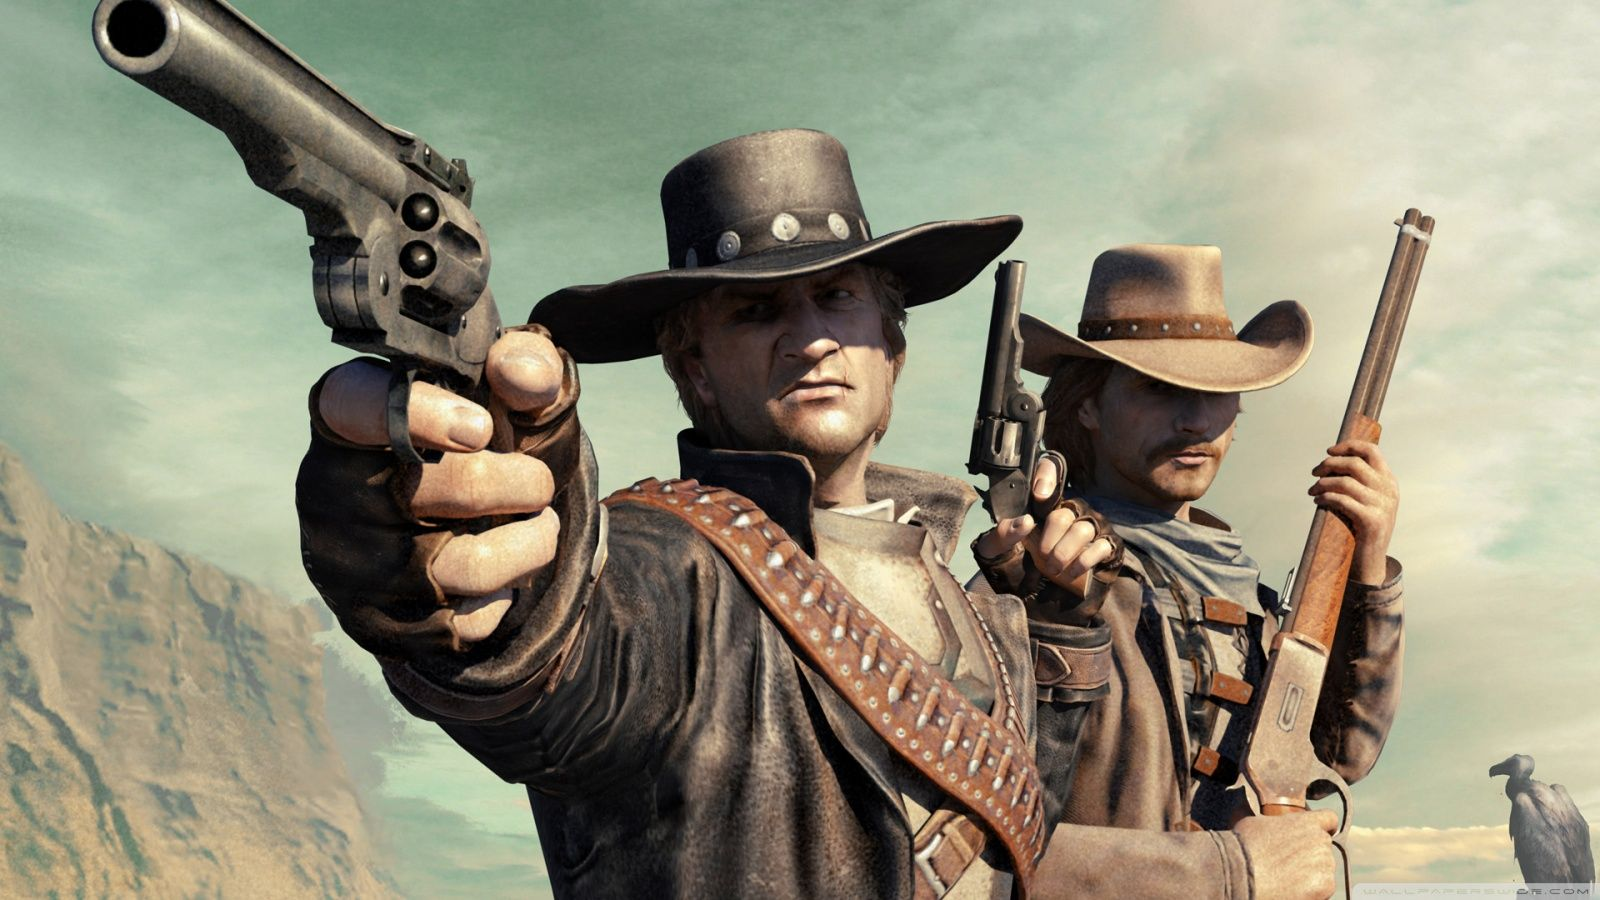 Outlaw gunslingers wallpapers top free outlaw gunslingers backgrounds wallpaperaccess - Gunfighter wallpaper ...